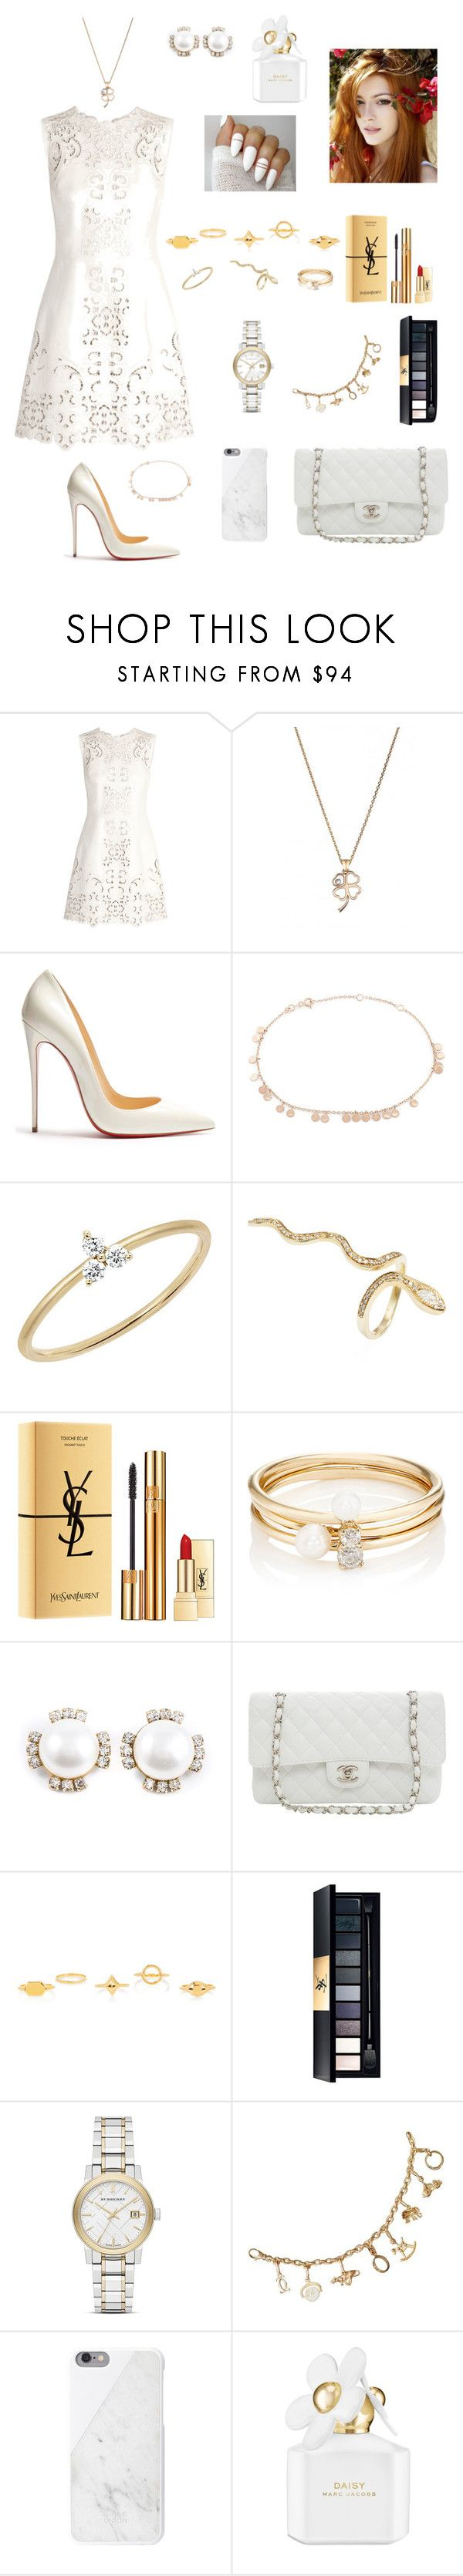 """White"" by tamara-wolfram ❤ liked on Polyvore featuring Dolce&Gabbana, Christian Louboutin, Kismet by Milka, EF Collection, Jacquie Aiche, Yves Saint Laurent, Loren Stewart, Chanel, Karl Lagerfeld and Chloé"